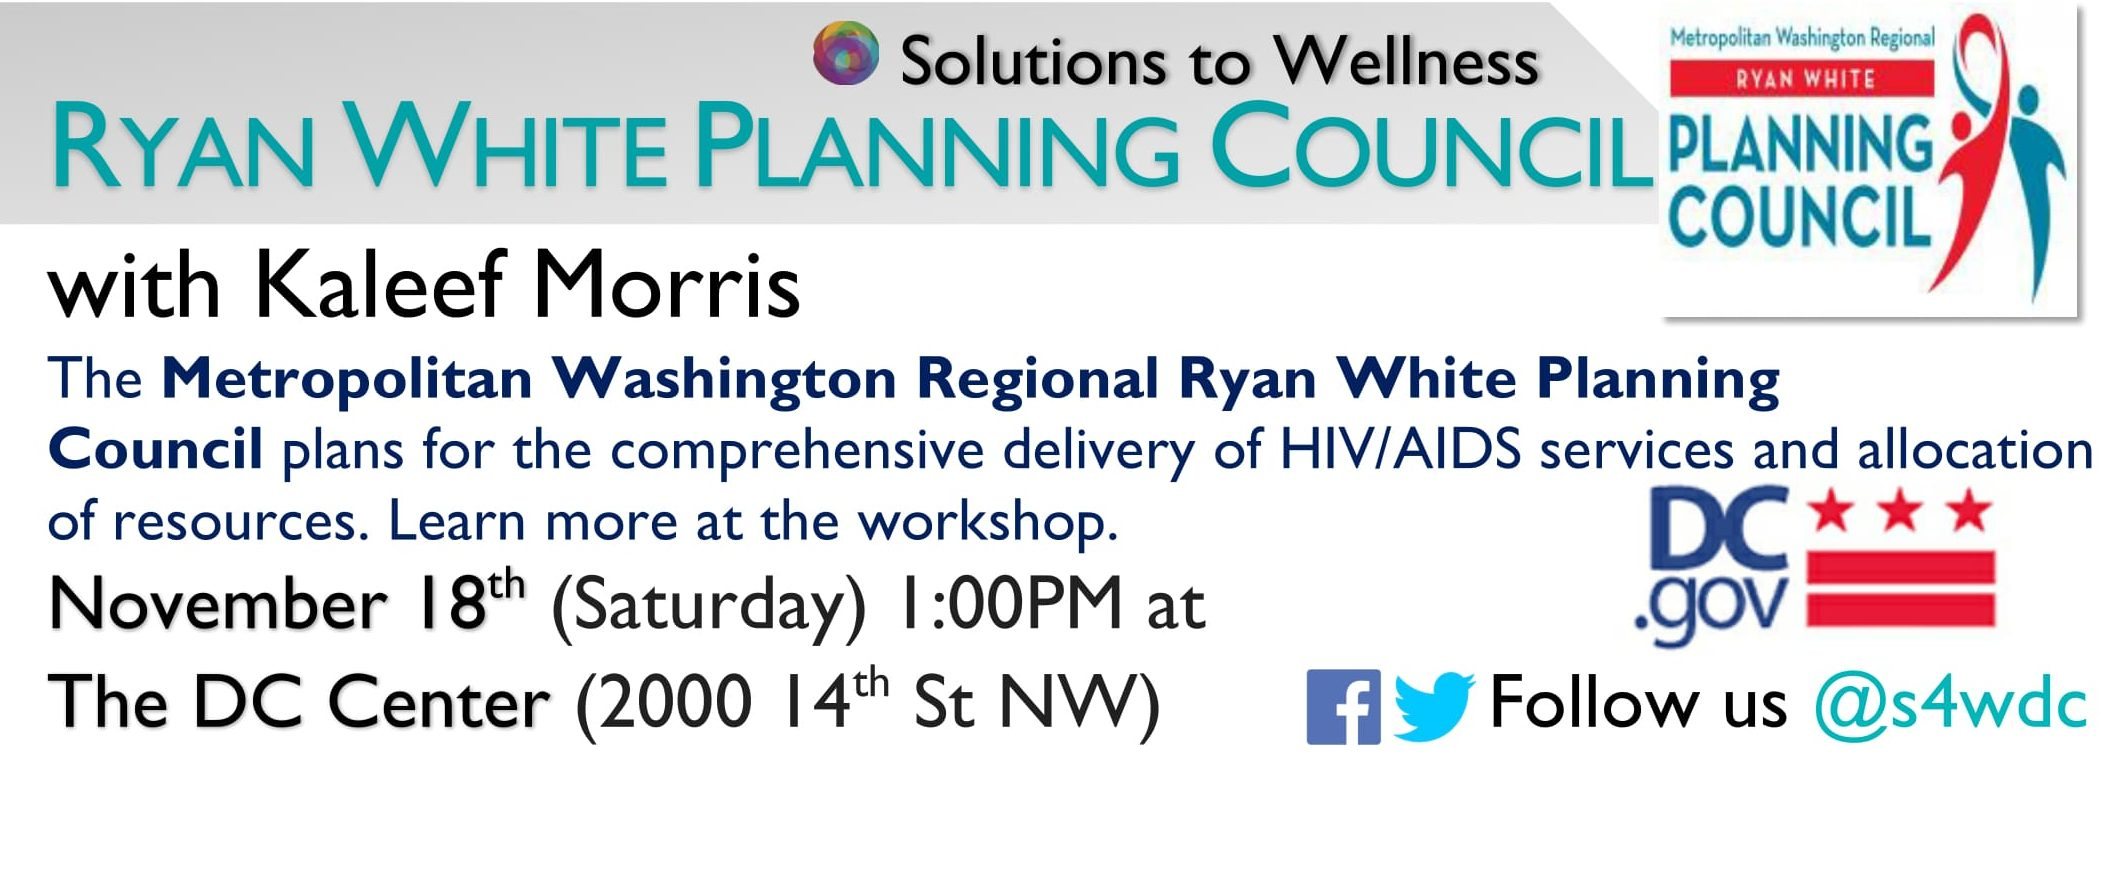 Ryan White Planning Council Workshop [Solutions to Wellness 2017]